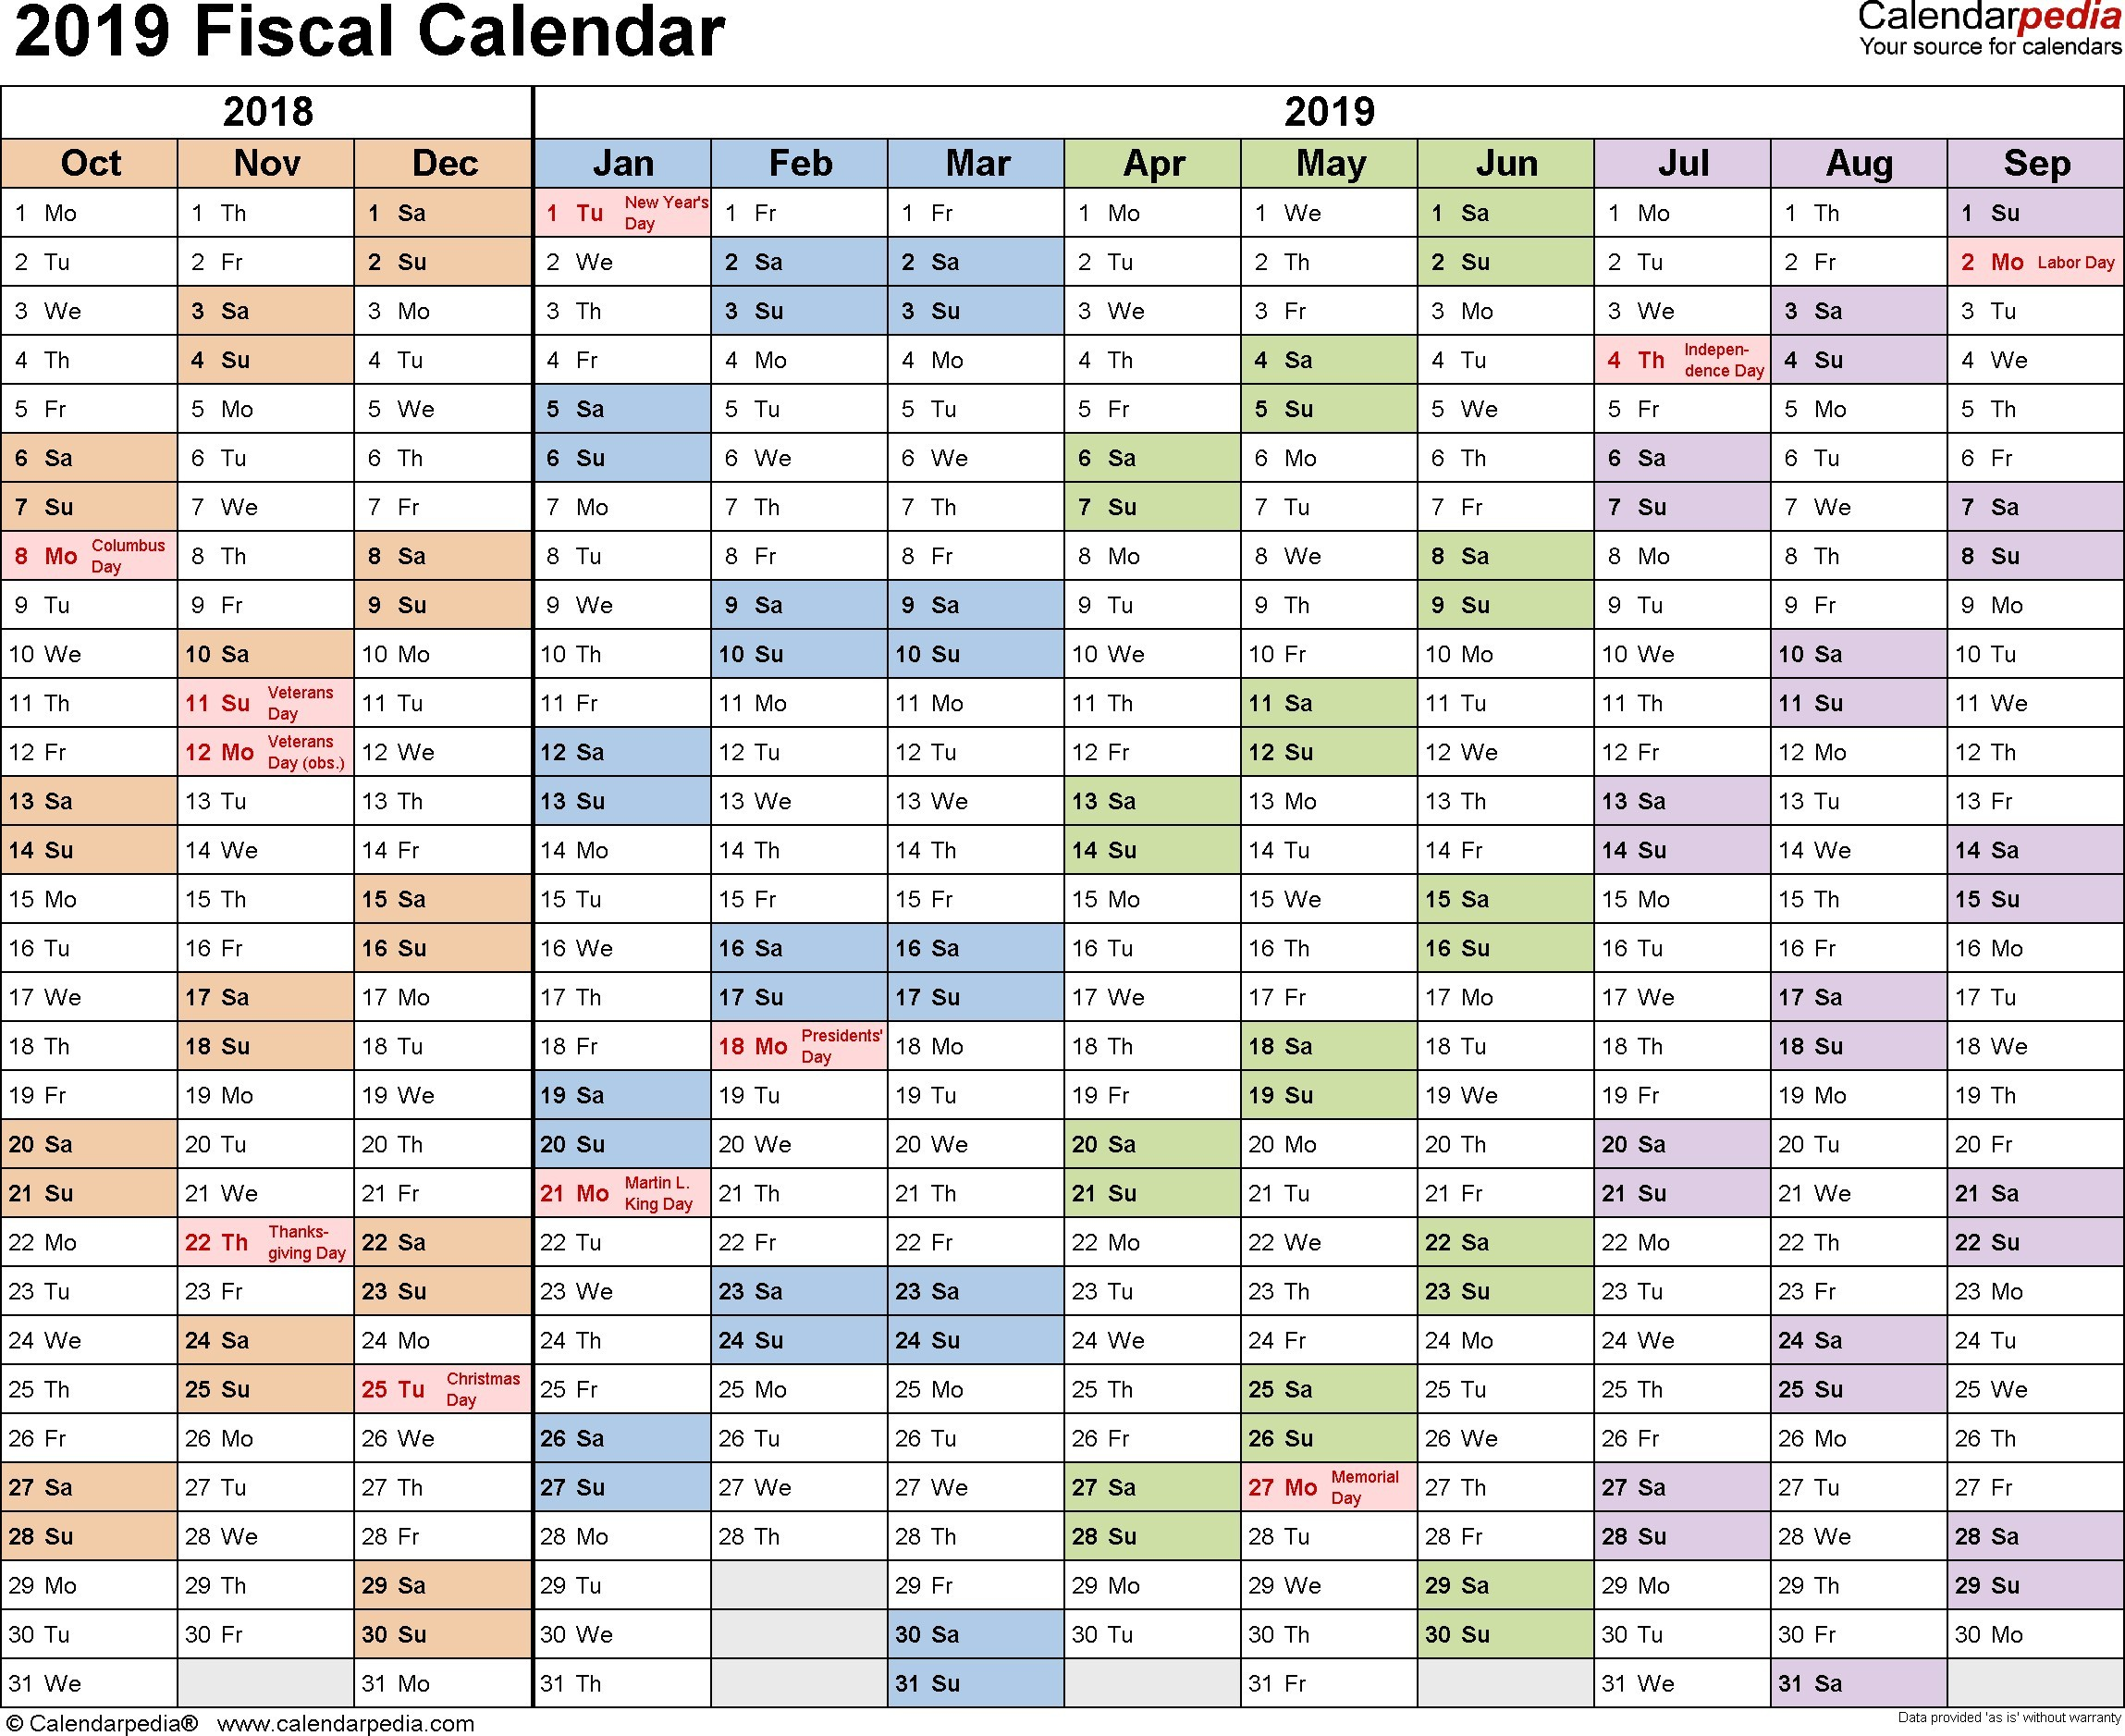 march calendar starting monday recientes fiscal calendars 2019 as free printable word templates of march calendar starting monday